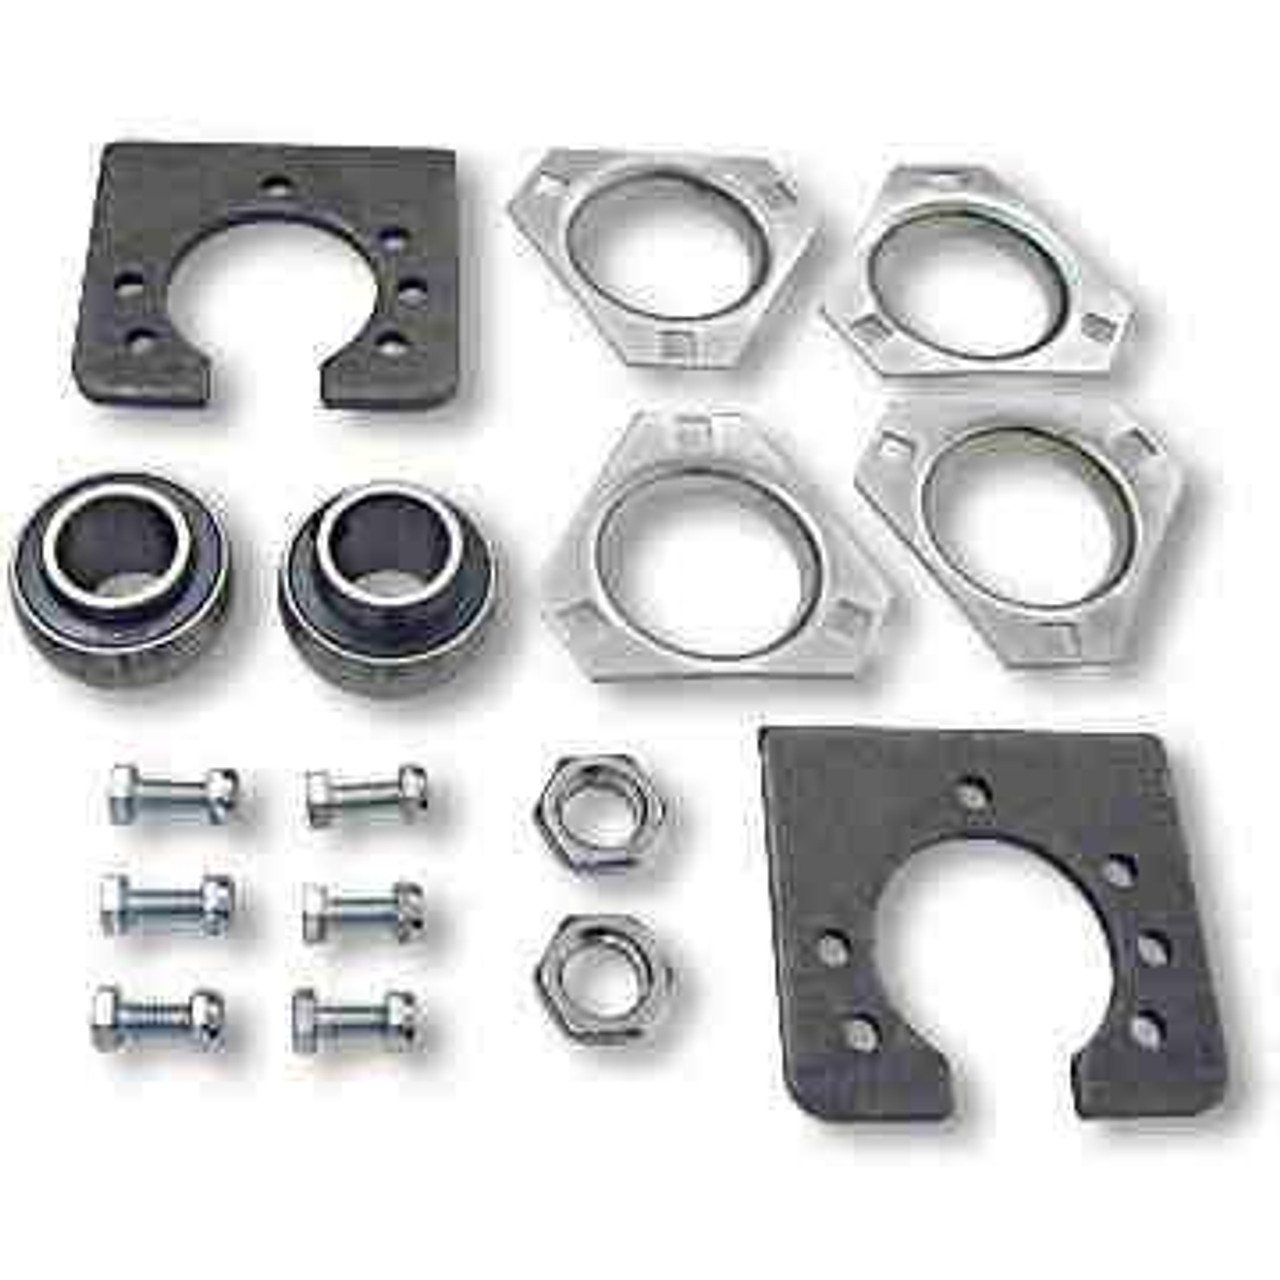 """1-1/4"""" Free Spinning Live Axle Bearing Kit, 3-Hole Flangettes"""